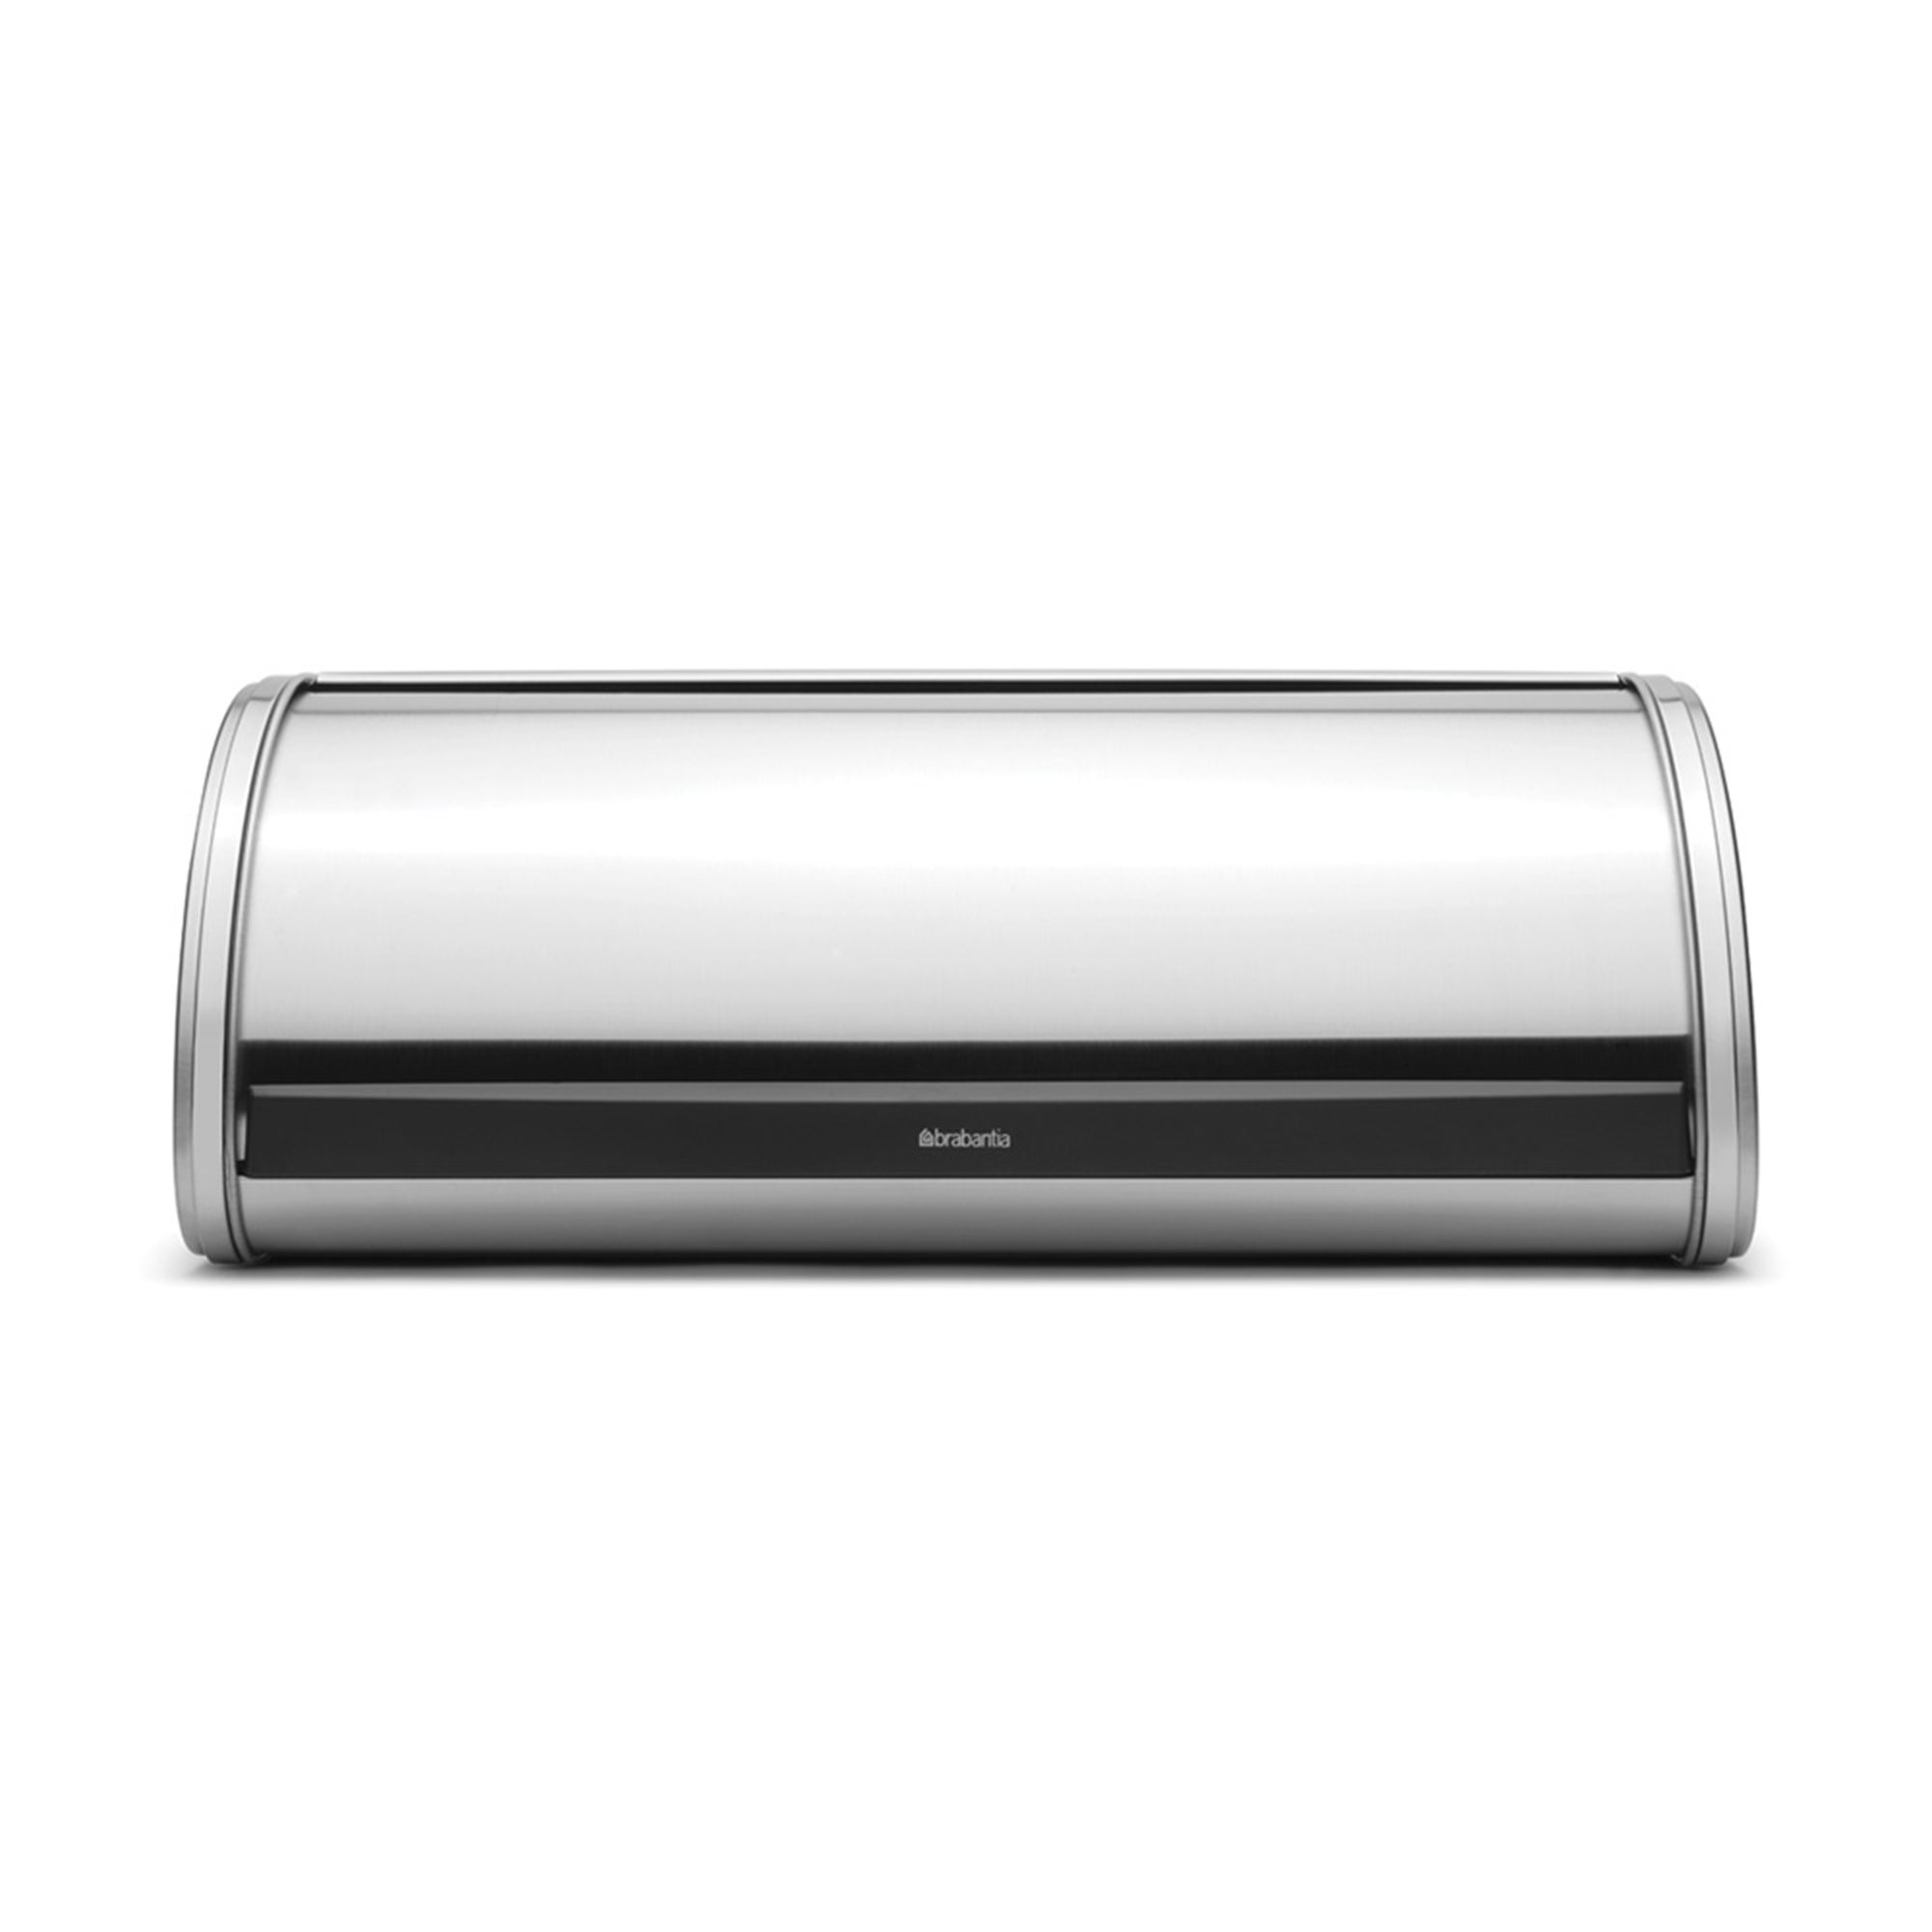 Brabantia Roll Top Matt Steel Bread Bin